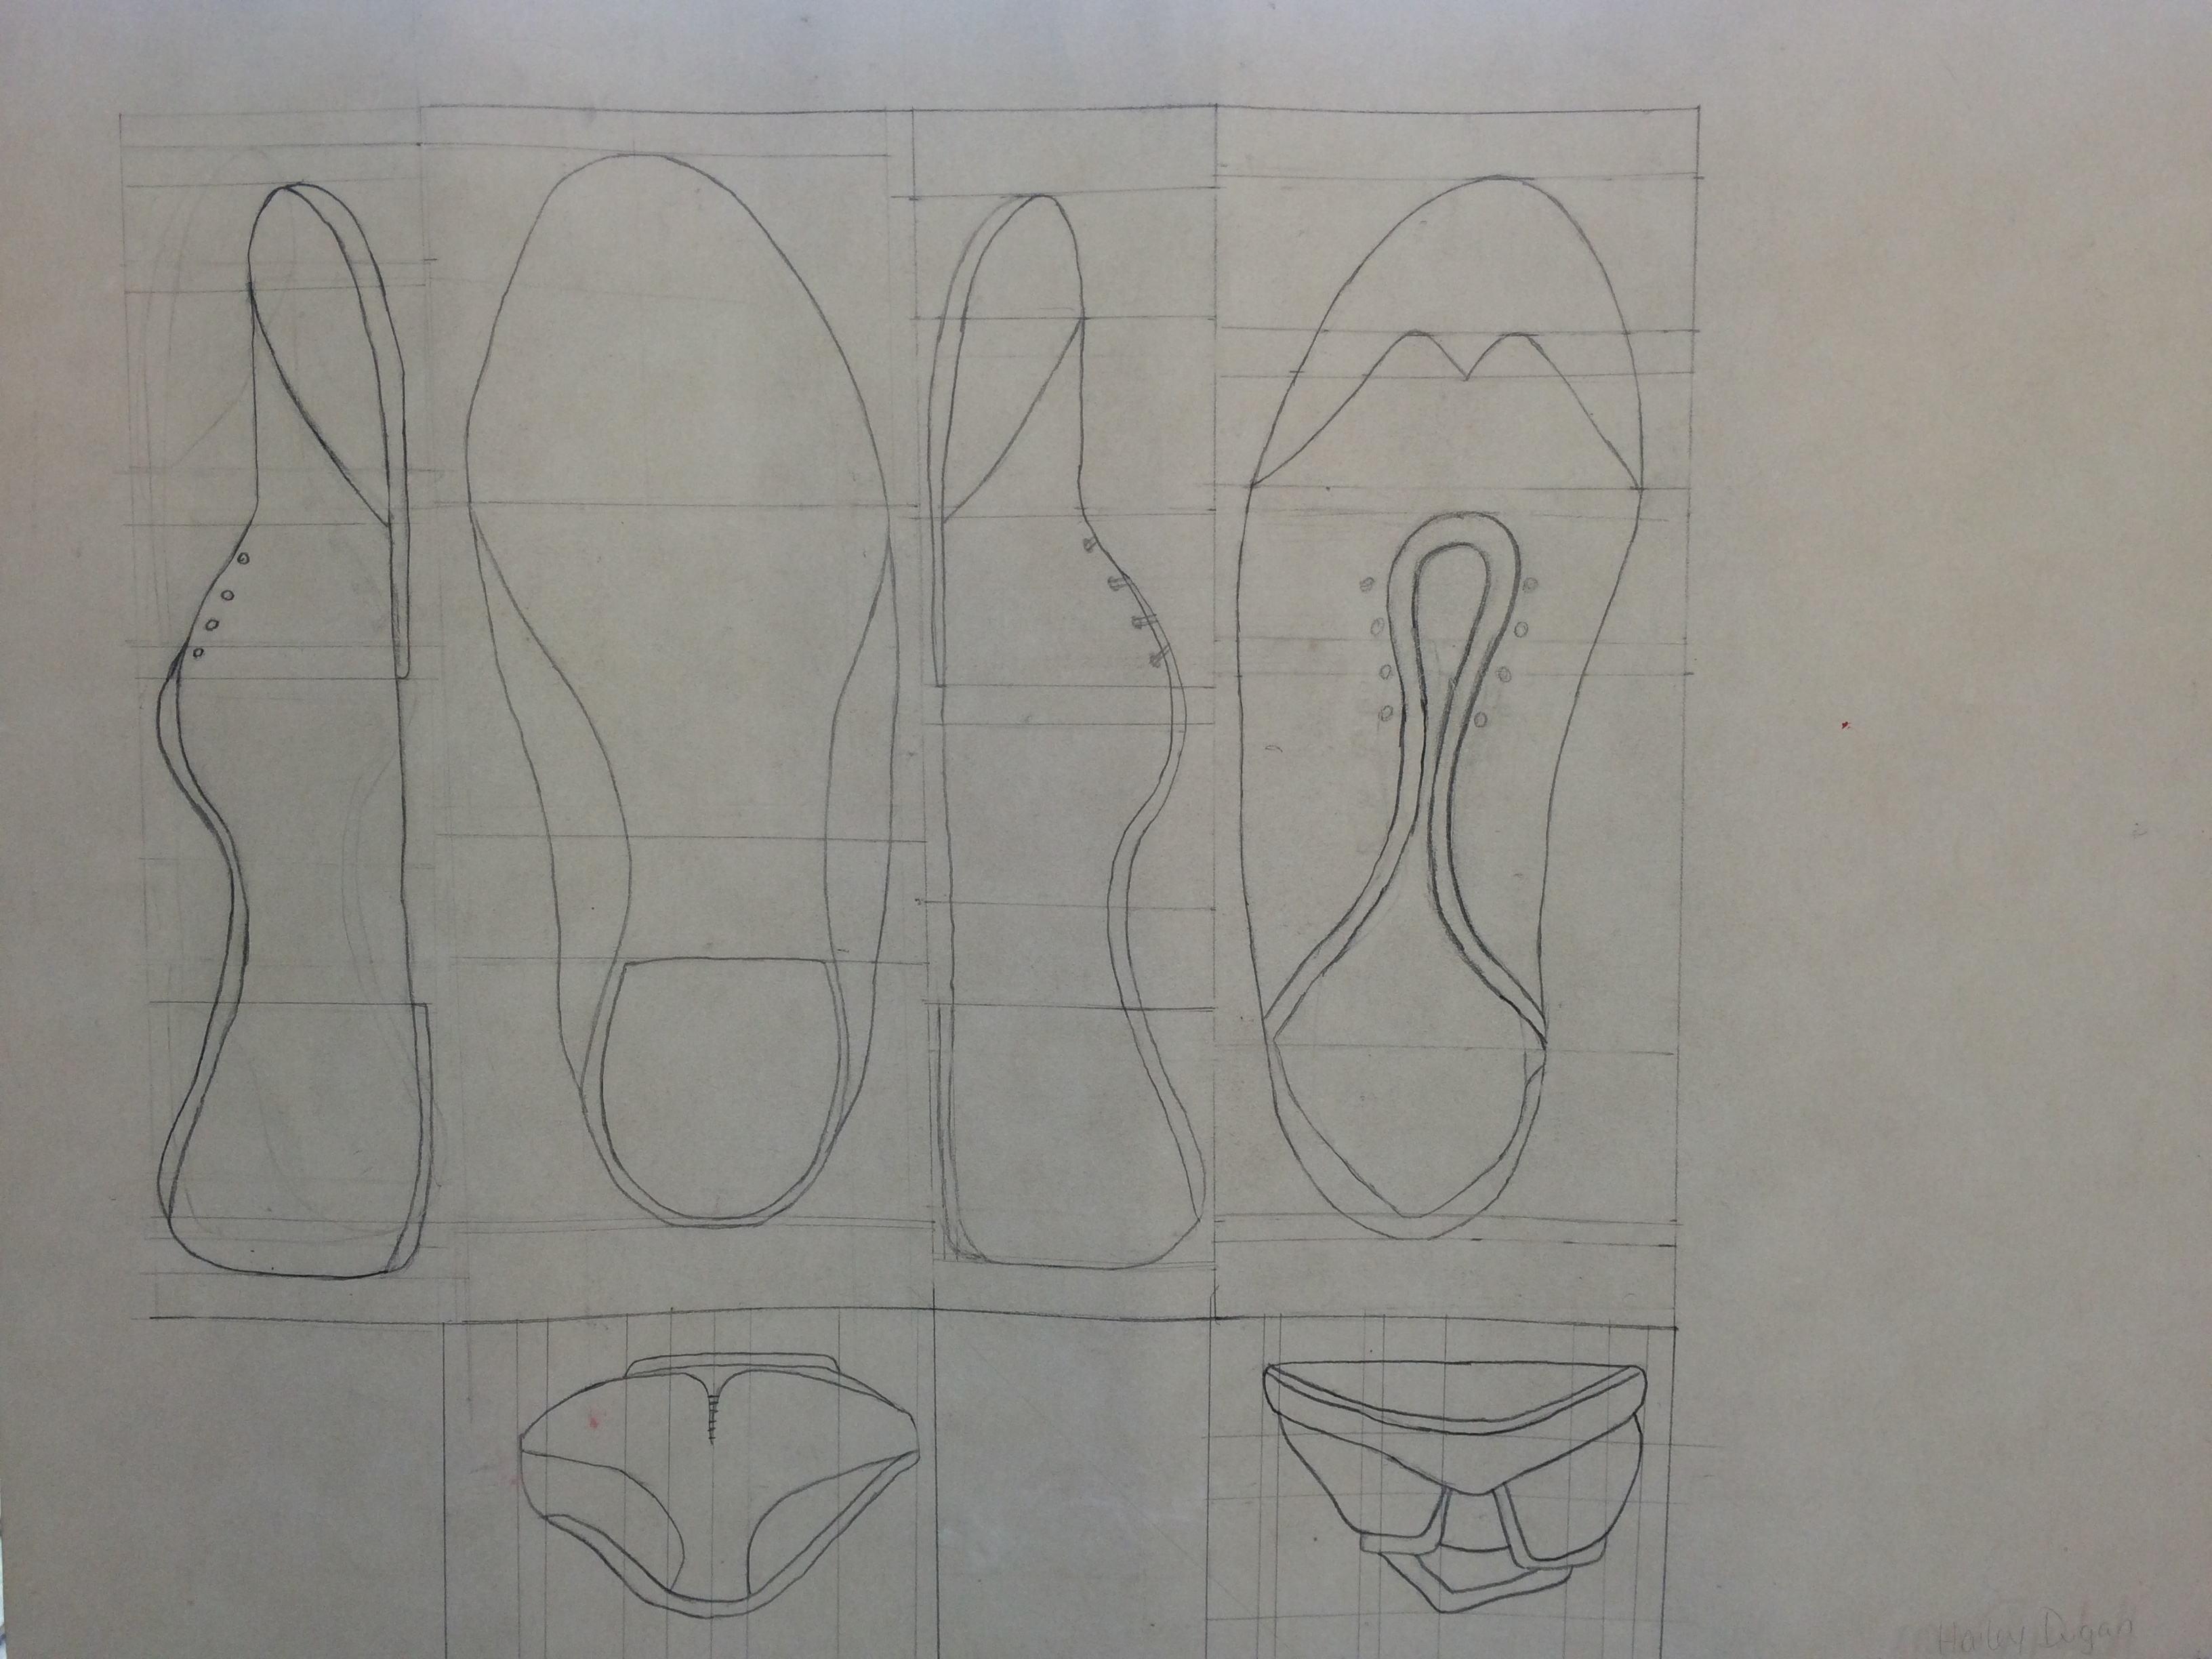 Orthographic Drawing: Shoes